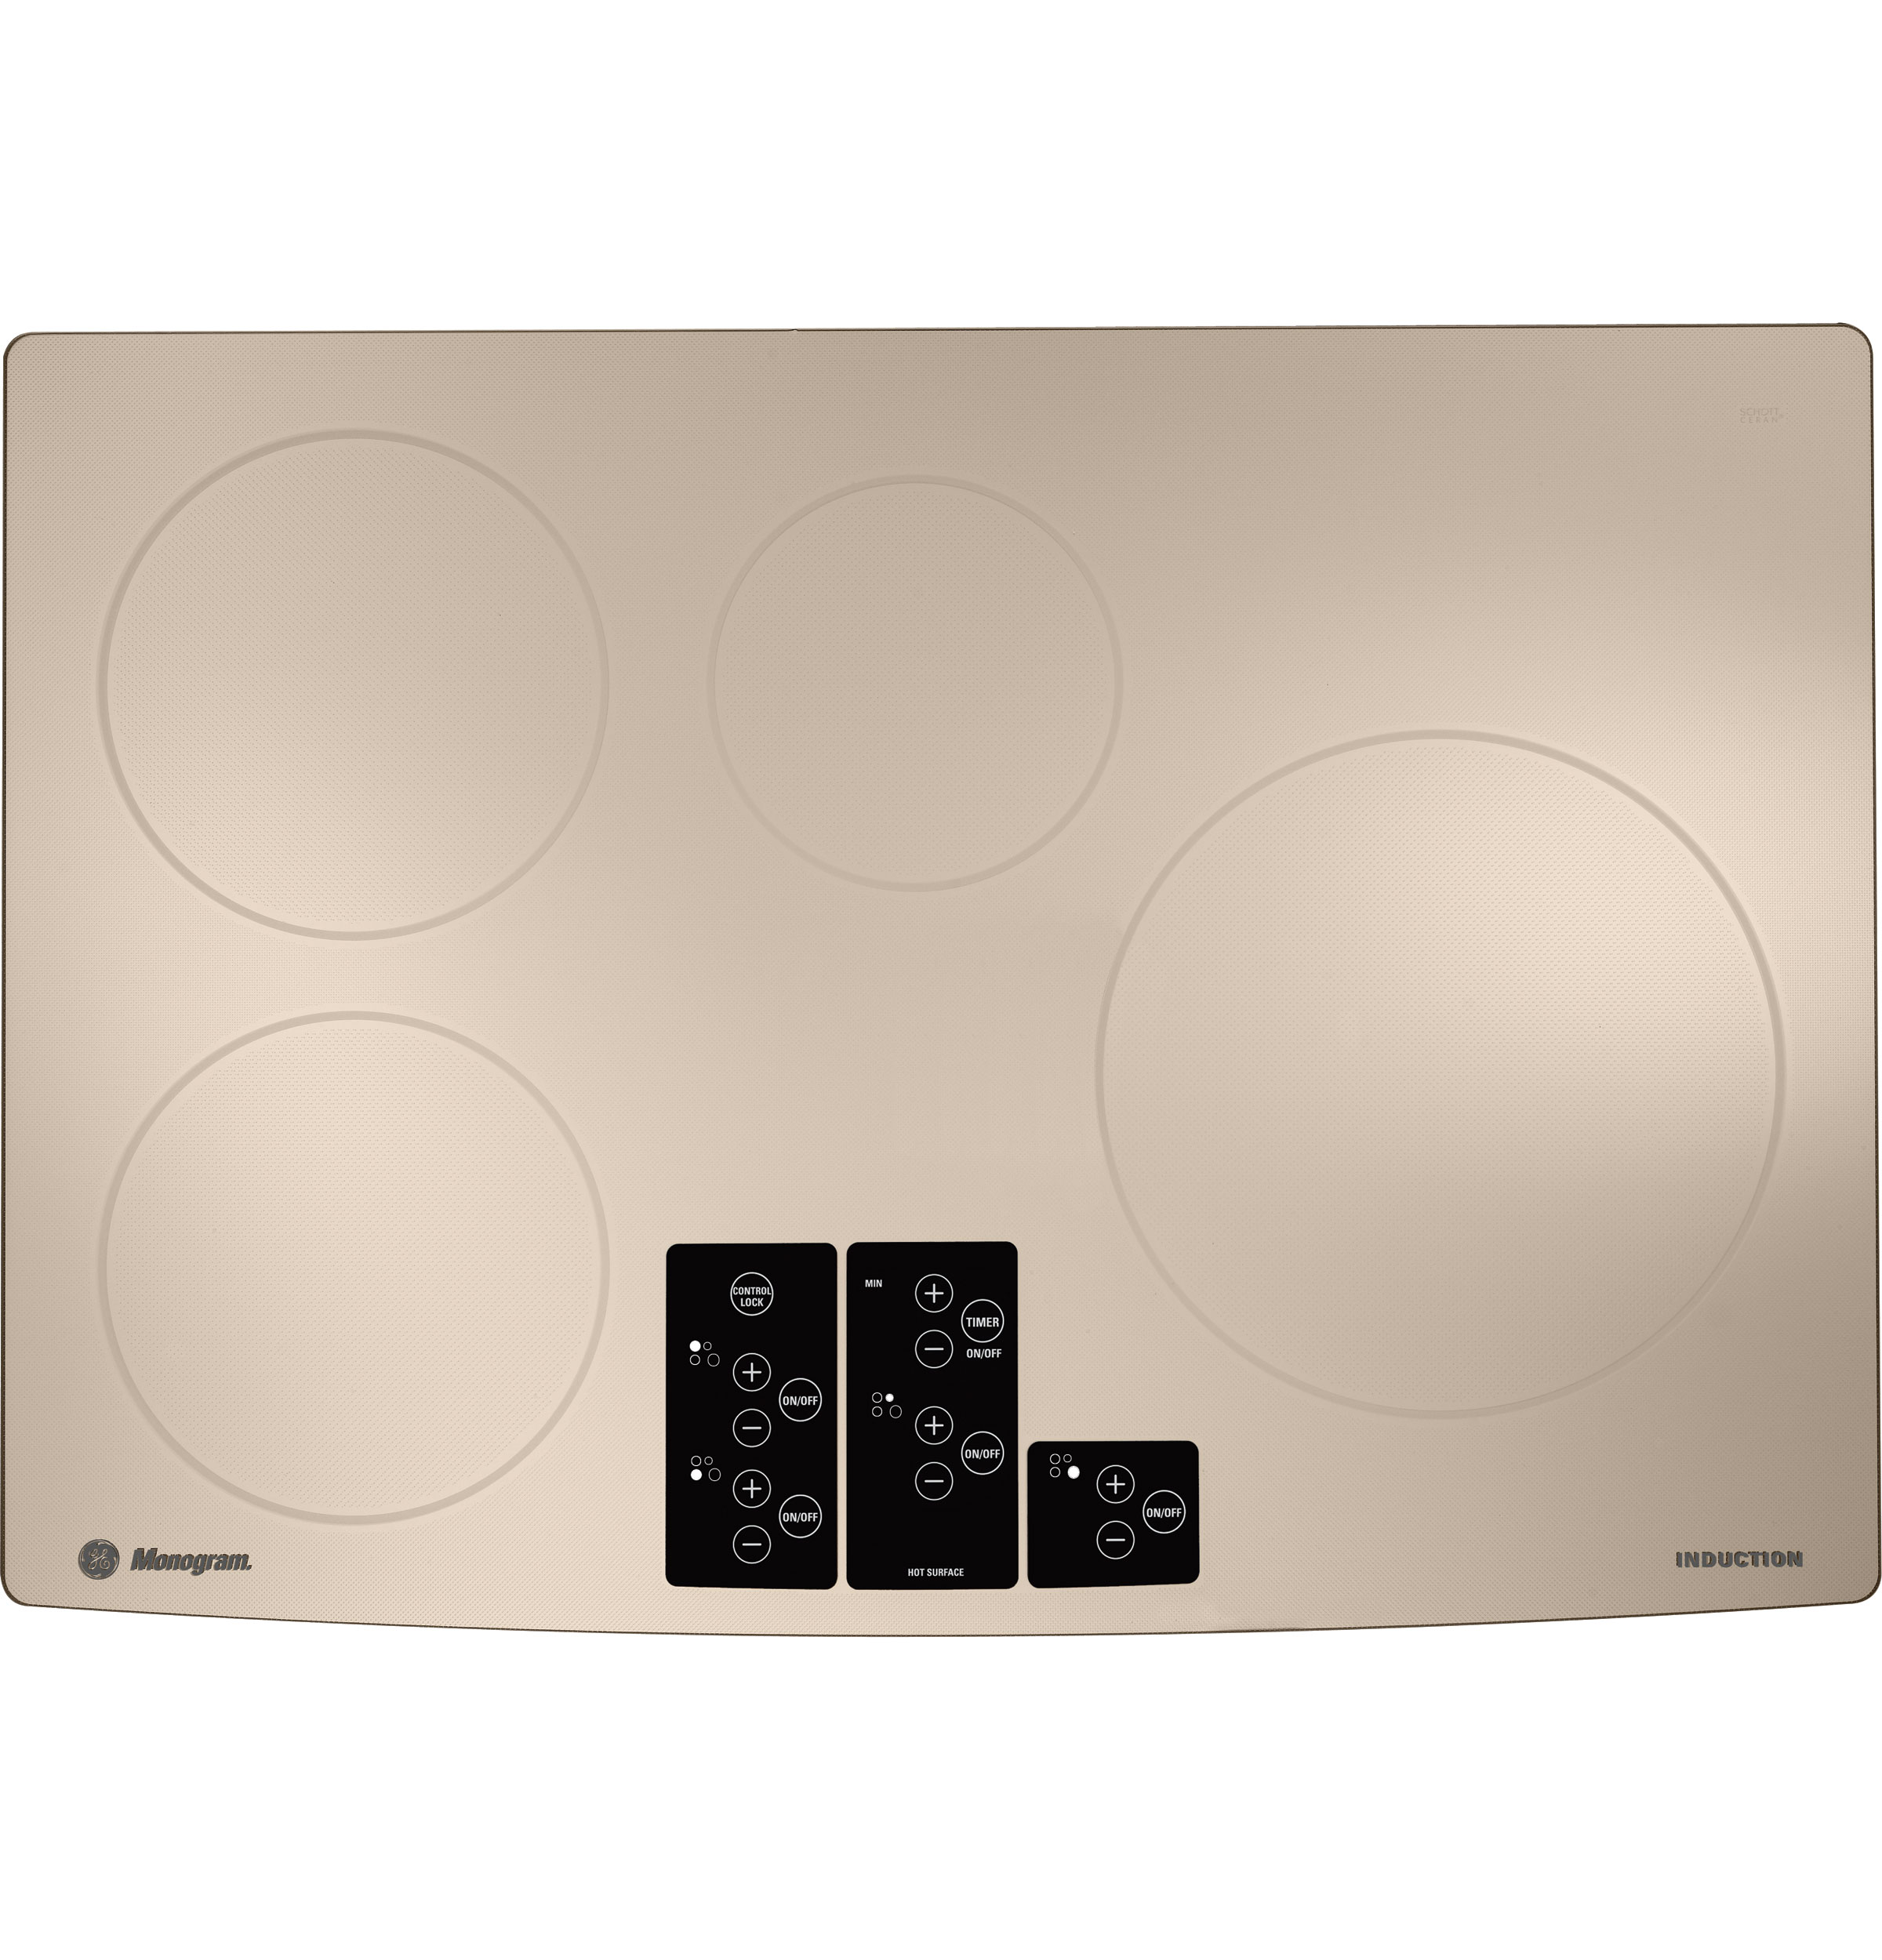 Monogram 30 Induction Cooktop Zhu30rsrss Ge Appliances Cooker Circuit Board Buy Product Image